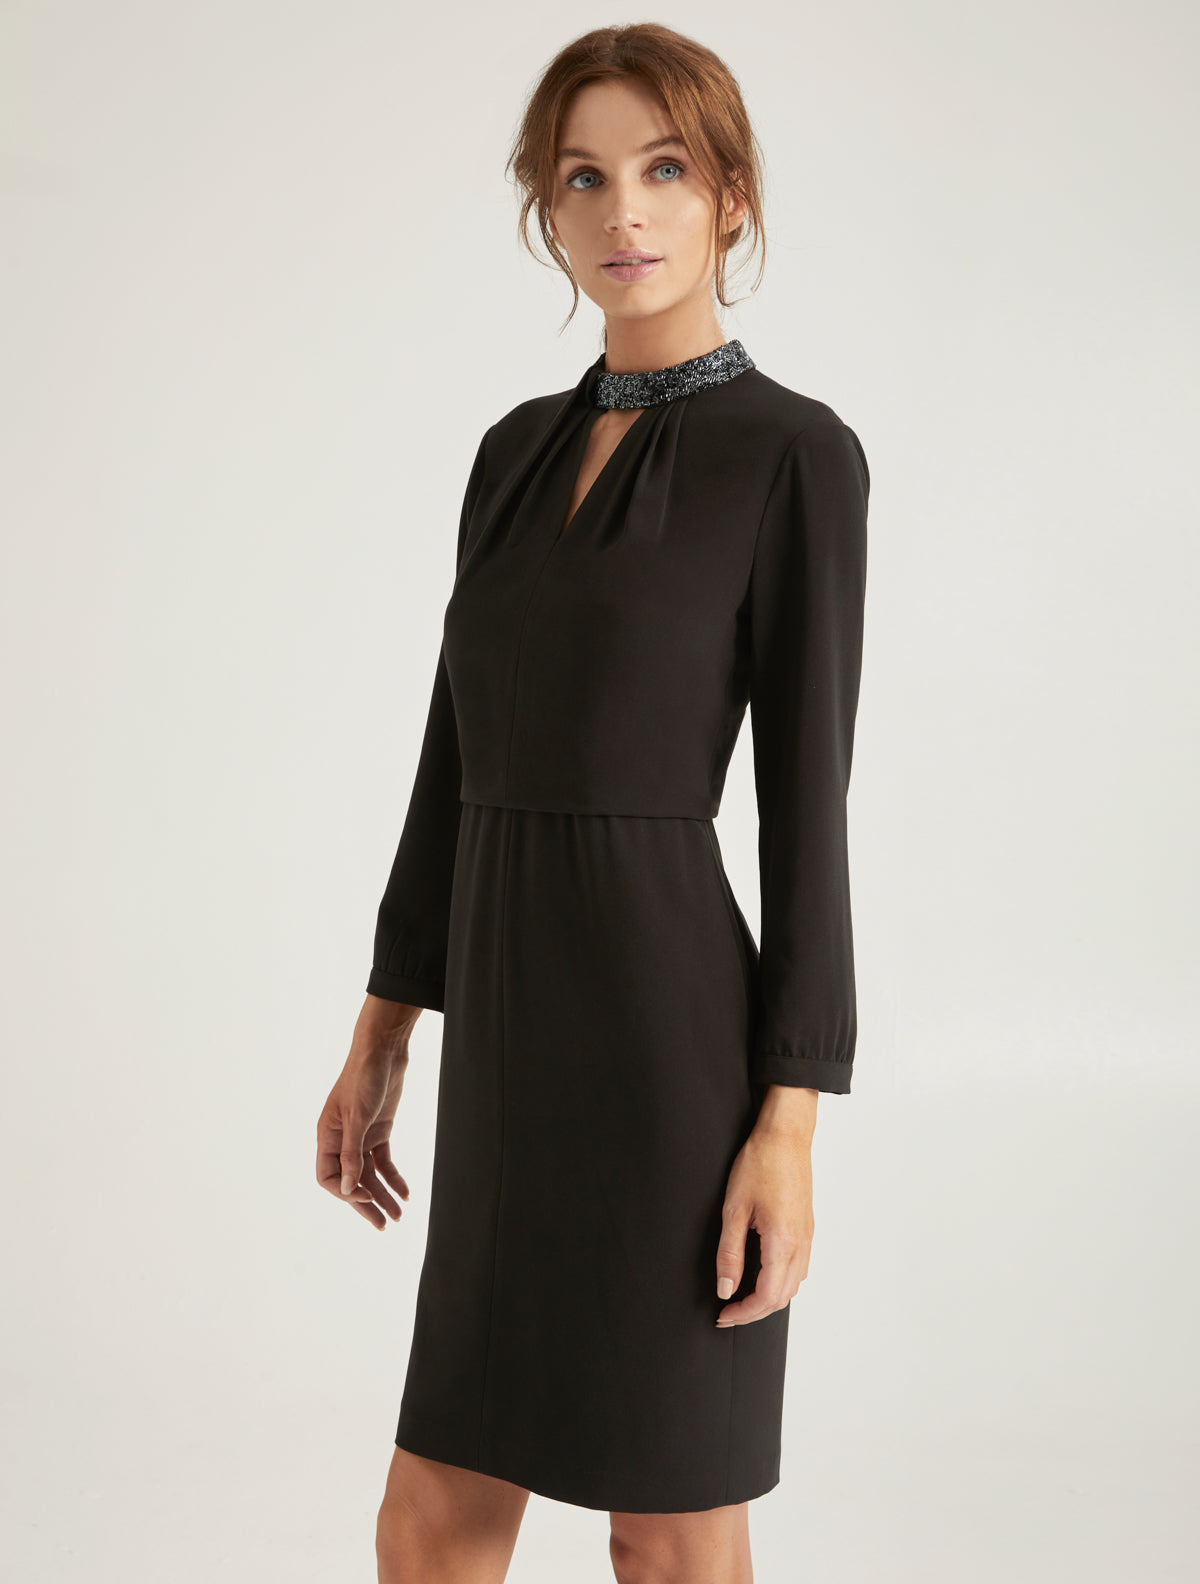 Embellished Neck Dress - Halston